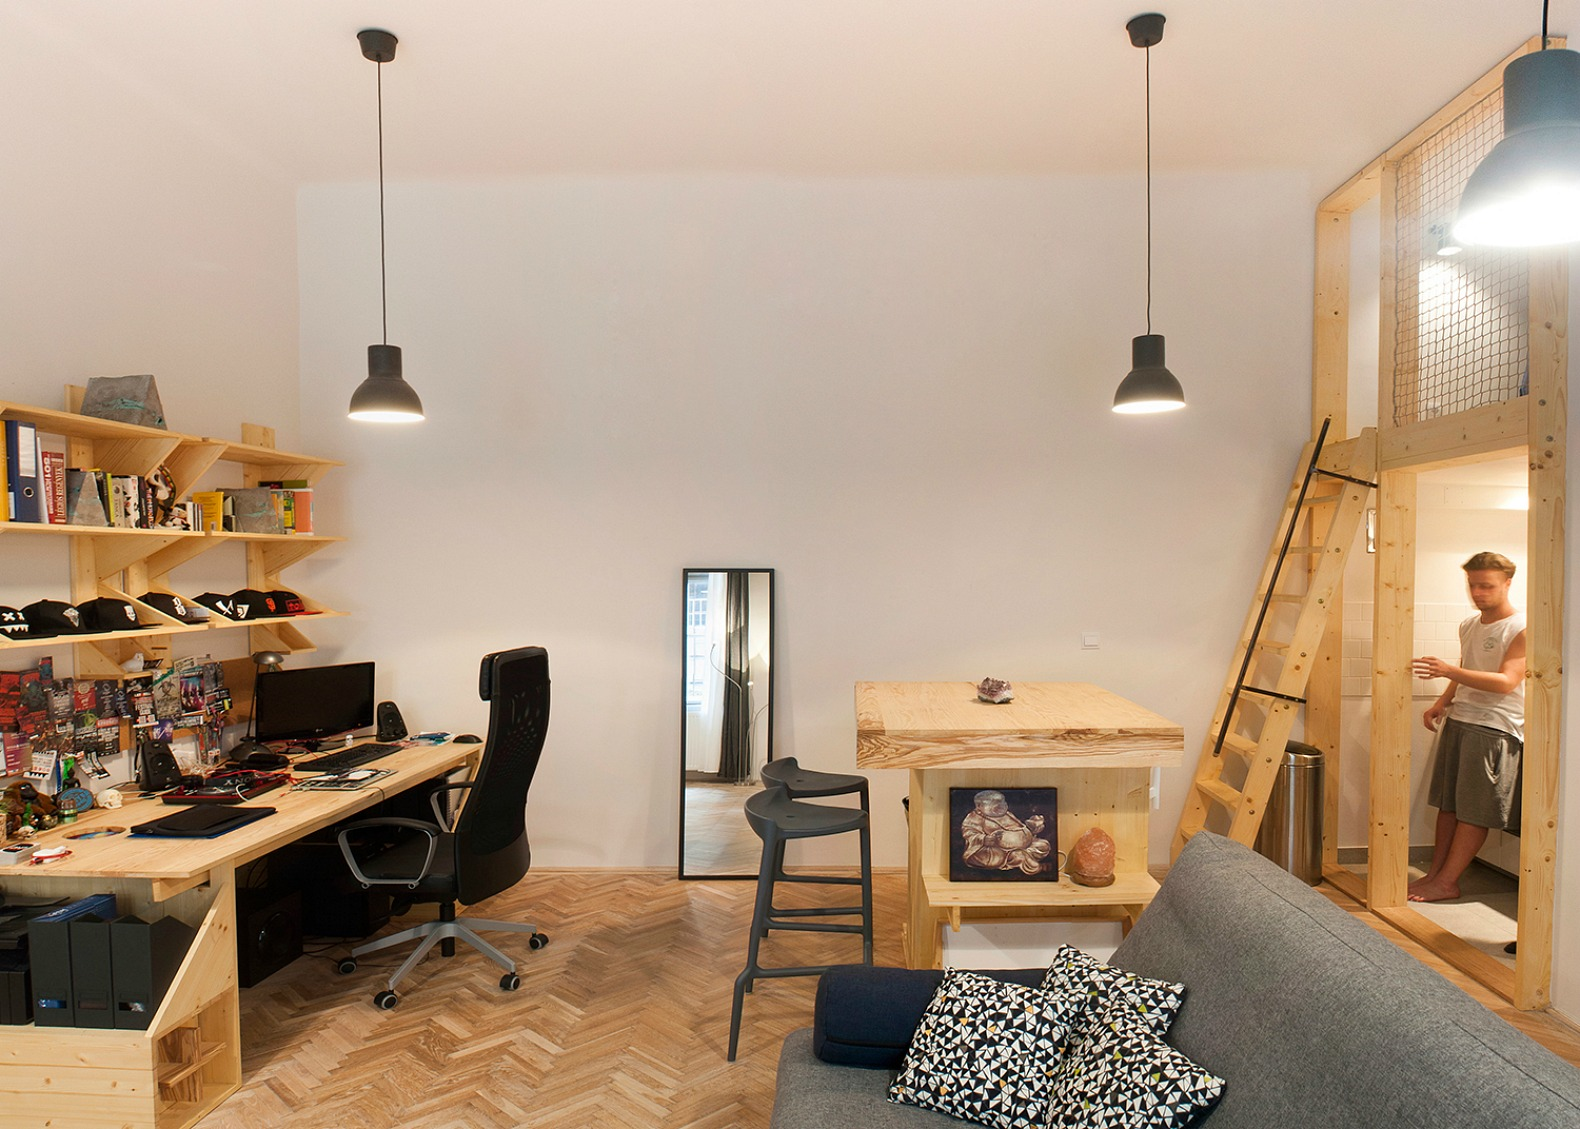 Micro Studio Apartments Cool Micro Studio In Budapest Makes The Most Out Of 344